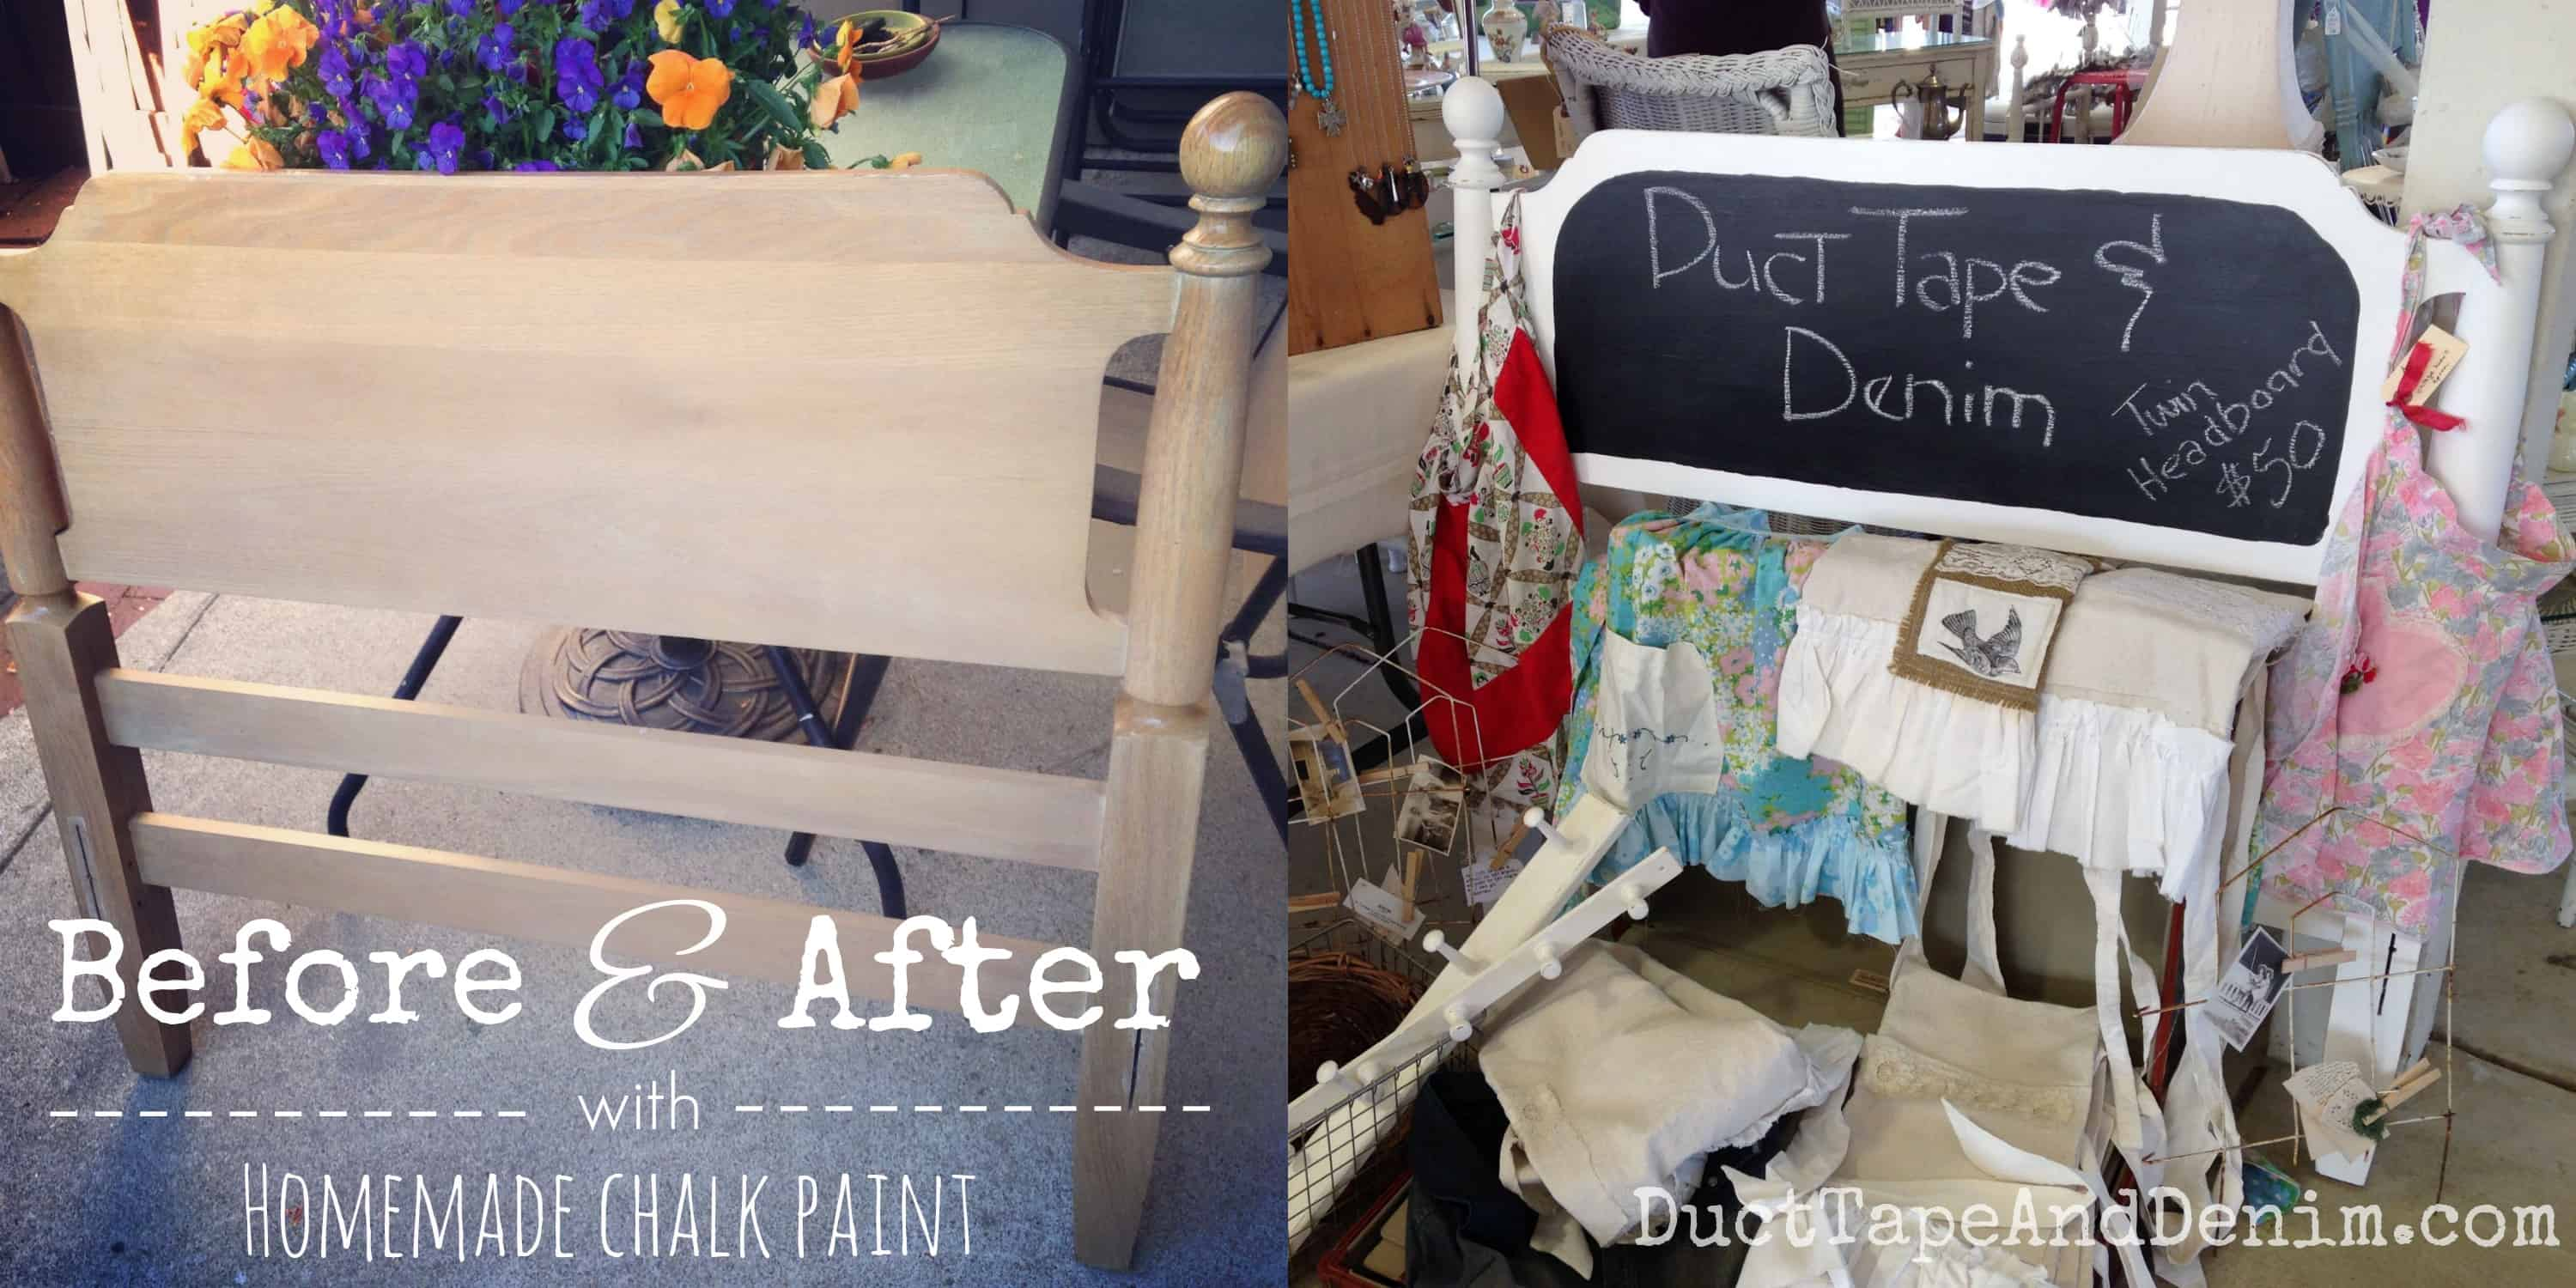 Homemade Chalk Paint Chalkboard Sign